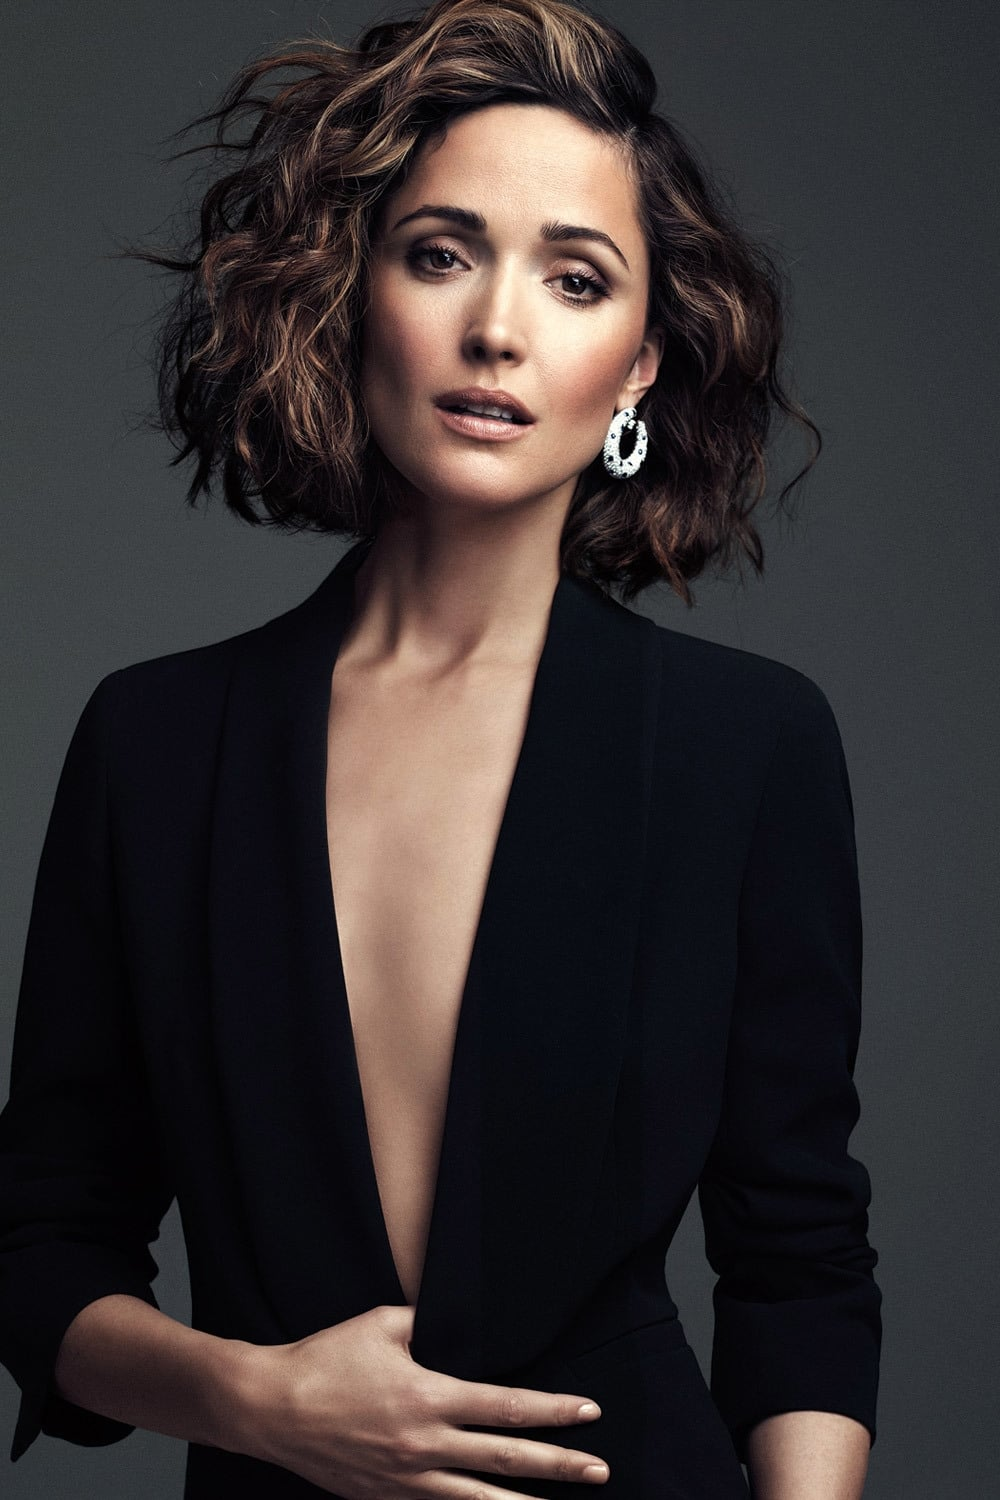 Rose Byrne nudes (62 fotos), fotos Erotica, YouTube, legs 2015